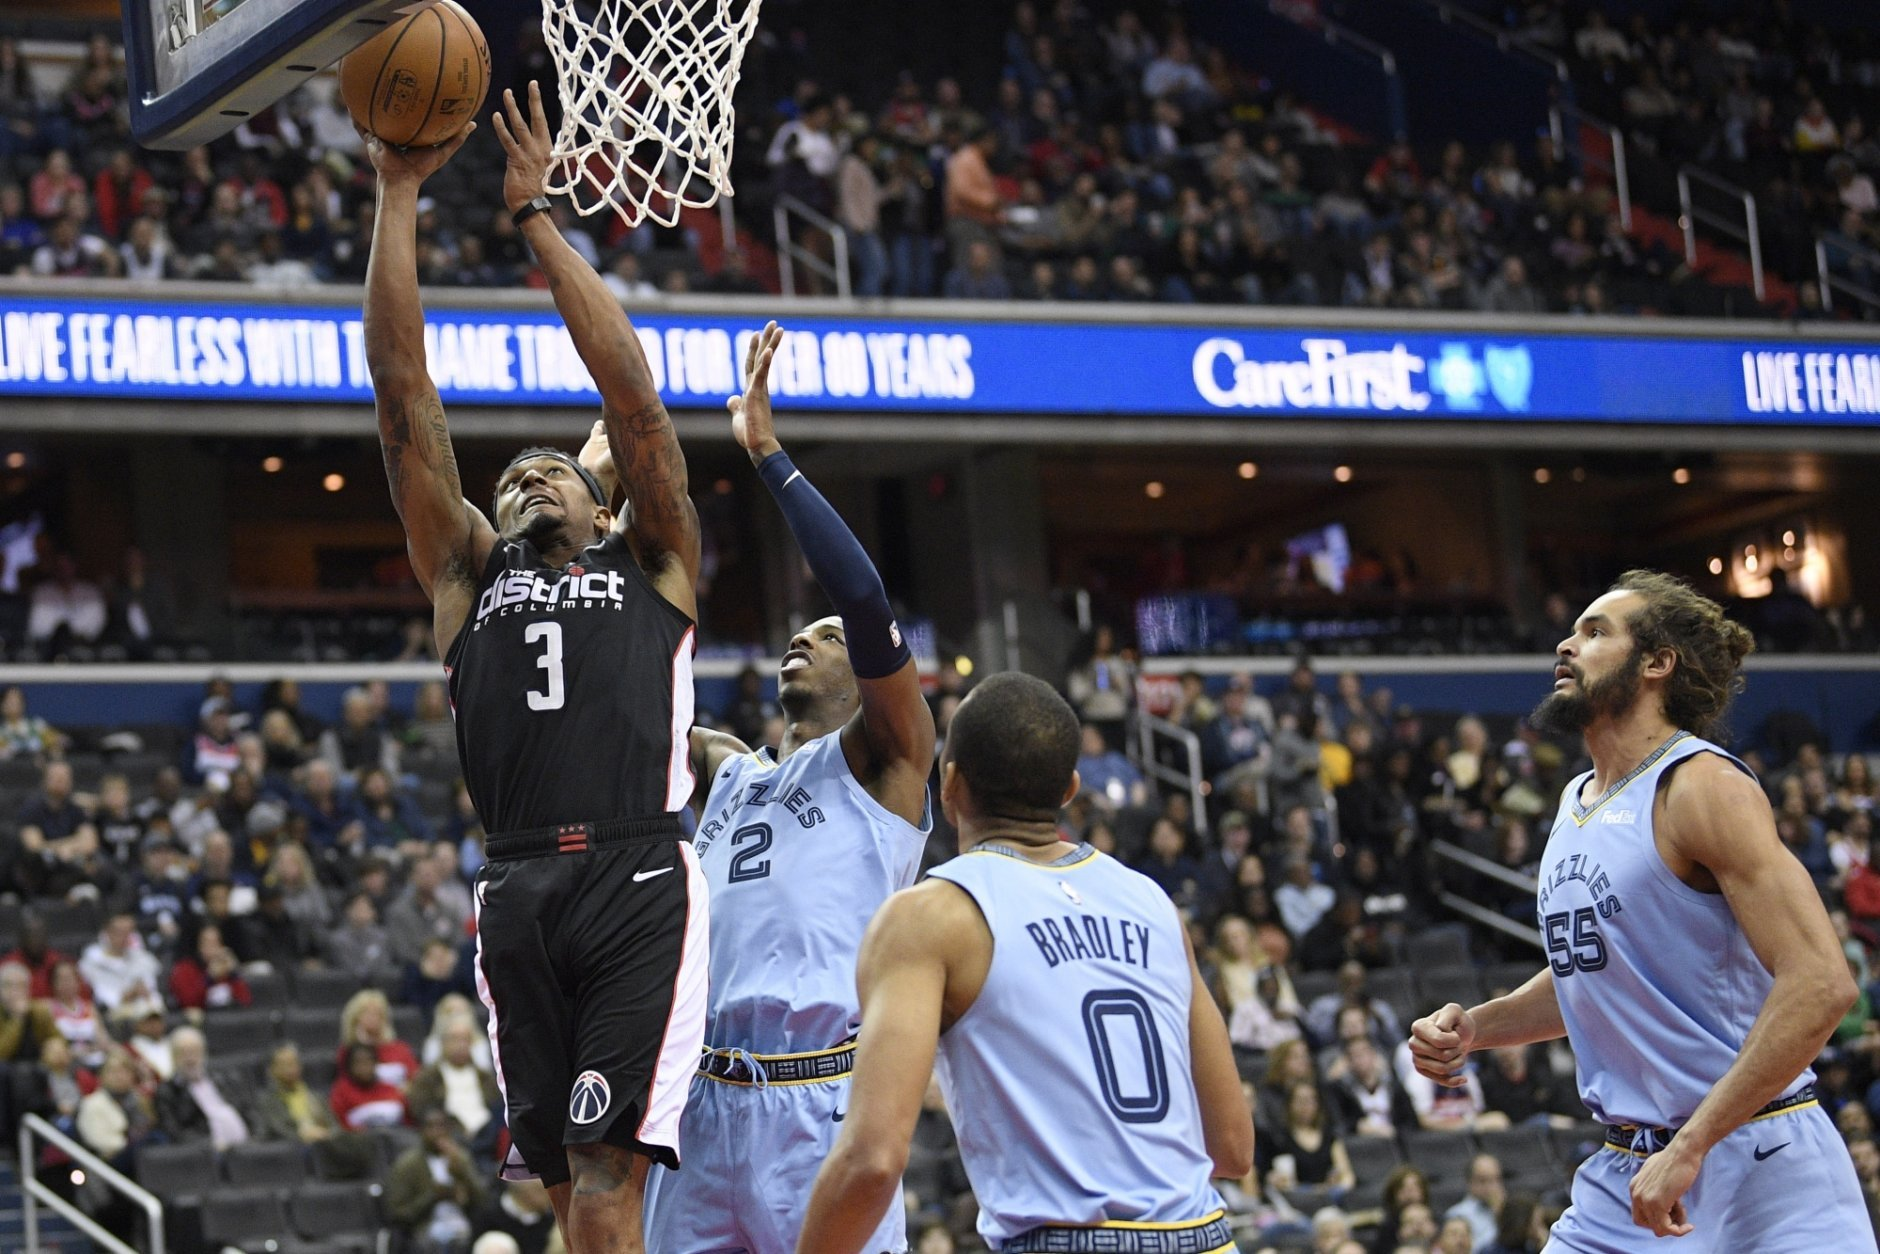 Washington Wizards guard Bradley Beal (3) goes to the basket against Memphis Grizzlies guard Delon Wright (2), guard Avery Bradley (0) and center Joakim Noah (55) during the first half of an NBA basketball game, Saturday, March 16, 2019, in Washington. (AP Photo/Nick Wass)